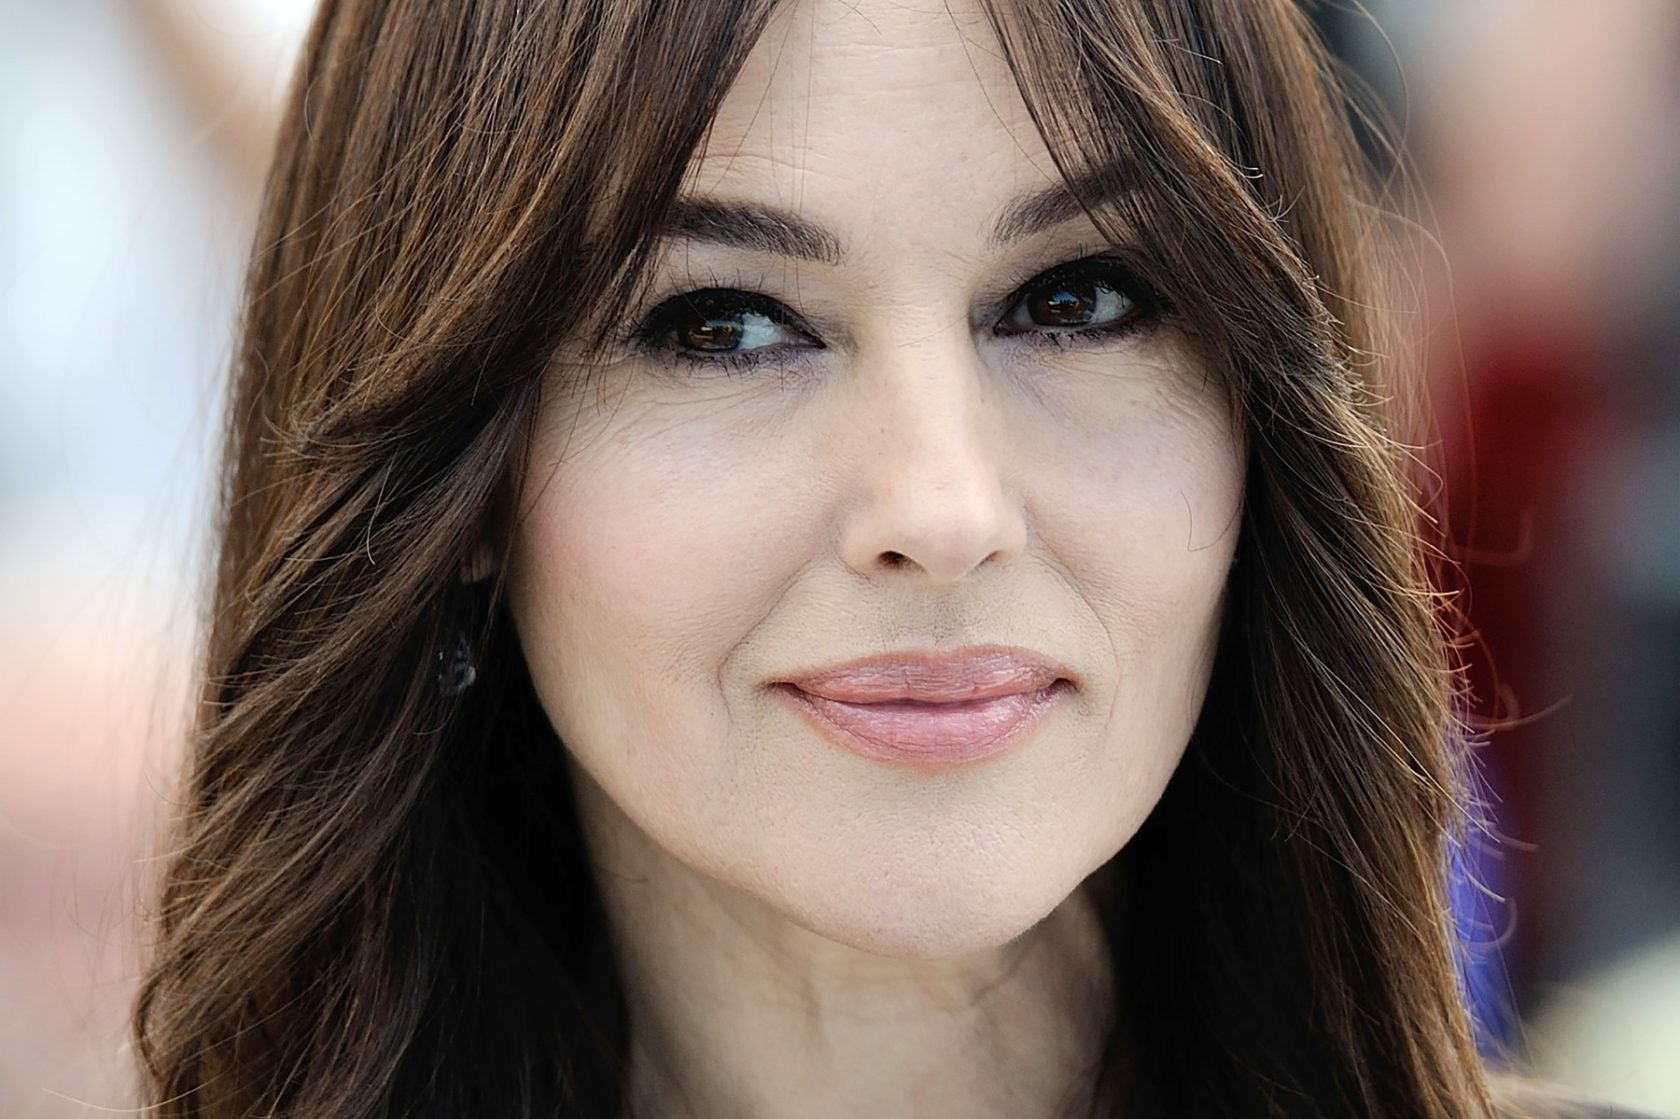 Monica Bellucci, the Mistress of Ceremony attending a photocall as part of the 70th Cannes Film Festival in Cannes, France on May 17, 2017., Image: 332561423, License: Rights-managed, Restrictions: , Model Release: no, Credit line: Profimedia, Abaca